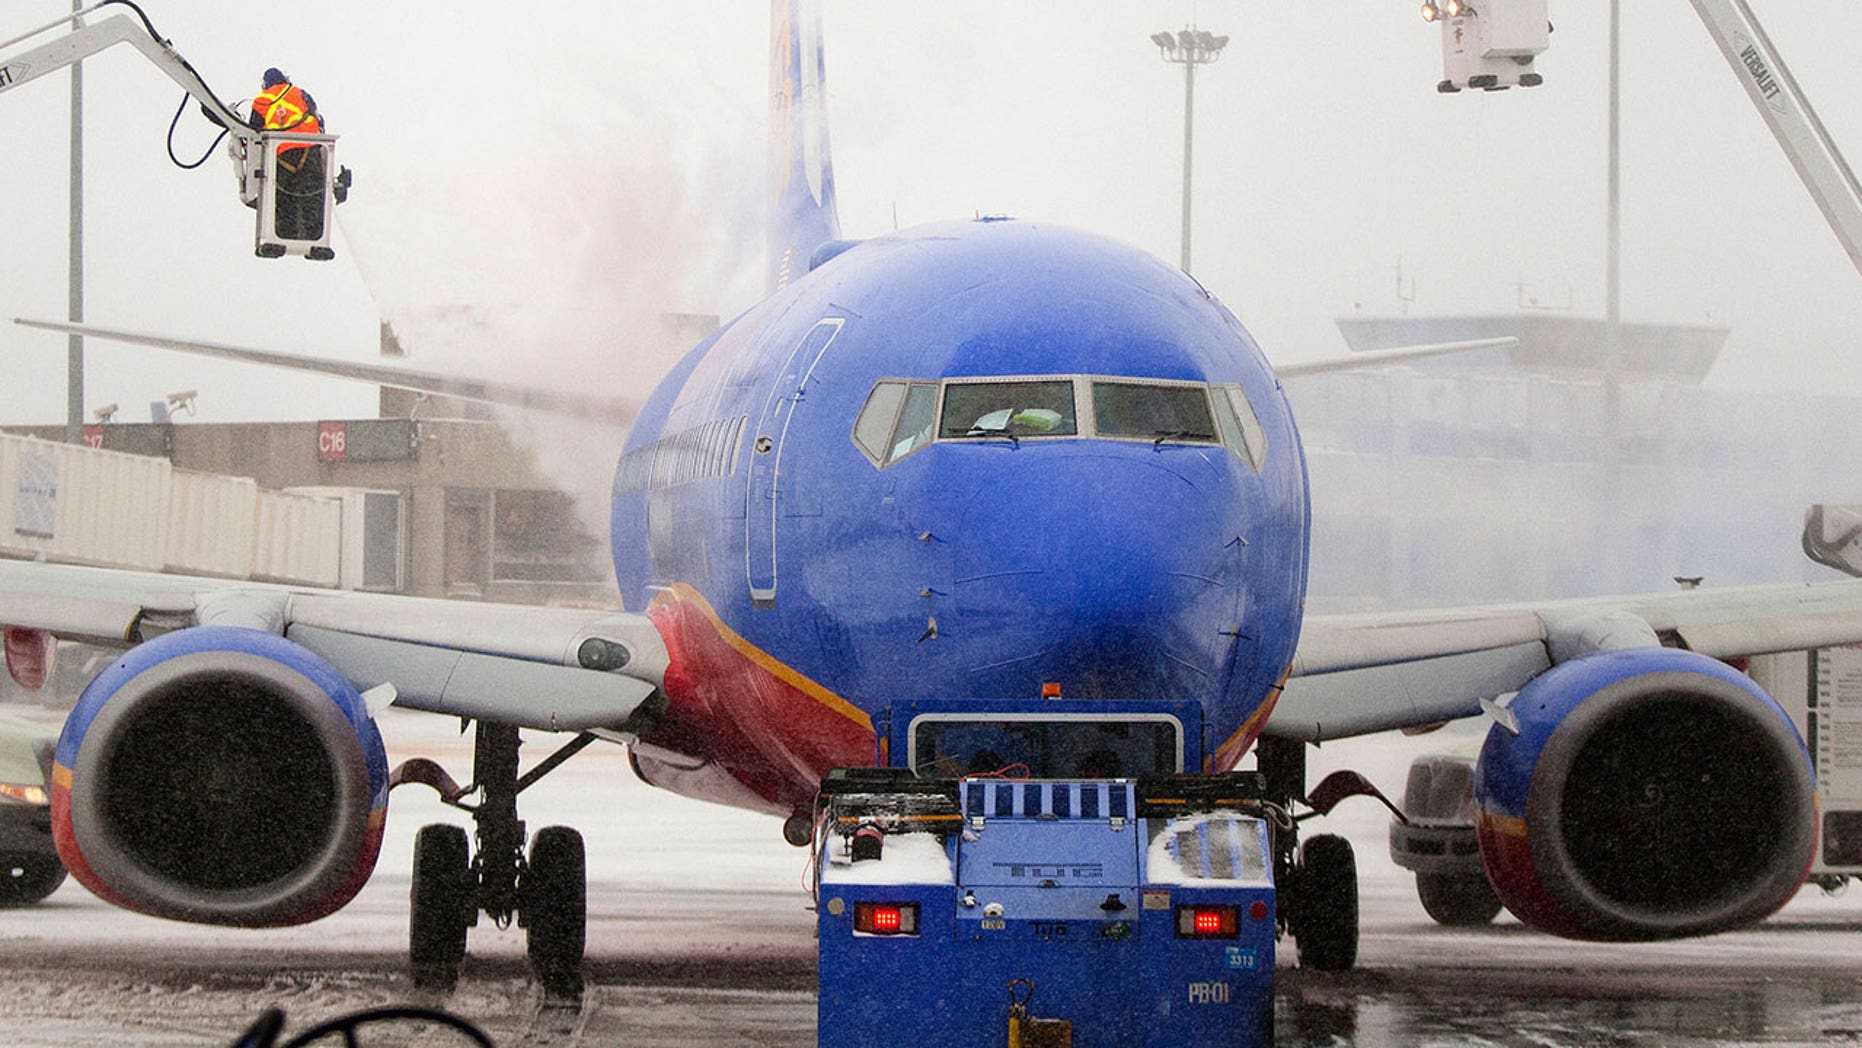 Southwest Airlines crew members are seen de-icing an aircraft at Boston's Logan International Airport in 2014. The airline recently confirmed that a lack of de-icing fluid was responsible for flight cancellations in Chicago on Sunday.